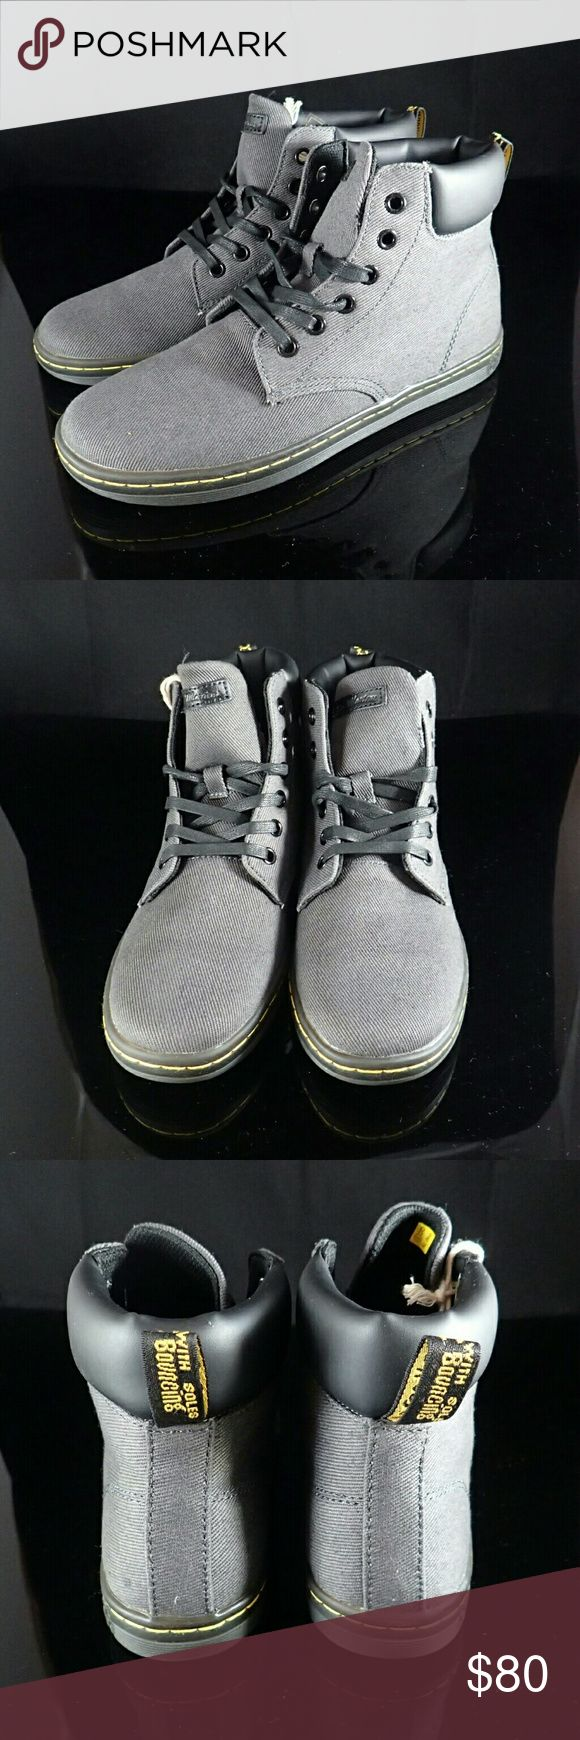 Dr. Airwair Martens Grey Boots Women's 7 - New Brand new, never worn, no damage. Does not ship with box. Dr. Martens Shoes Lace Up Boots